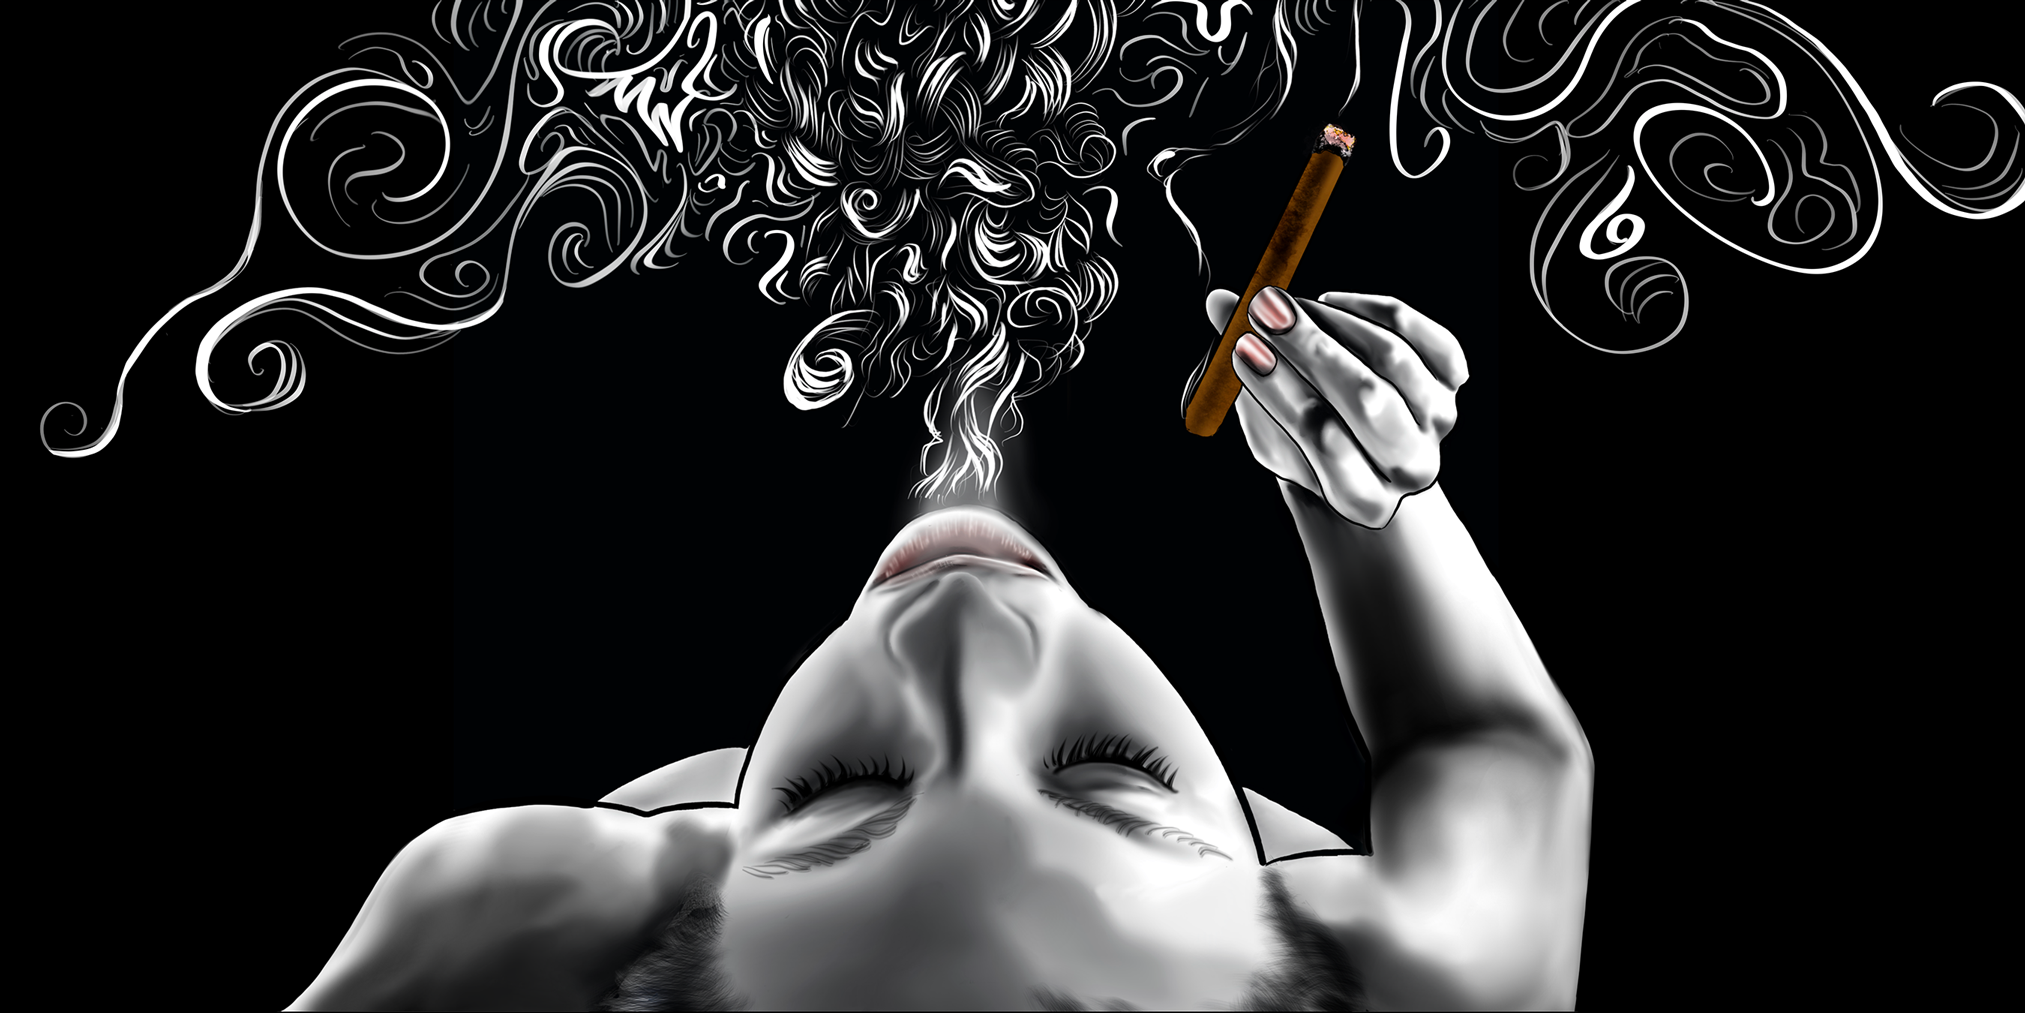 Digital illustration of a woman on her back smoking a cigar and she blows a plume of Art Deco Style smoke.